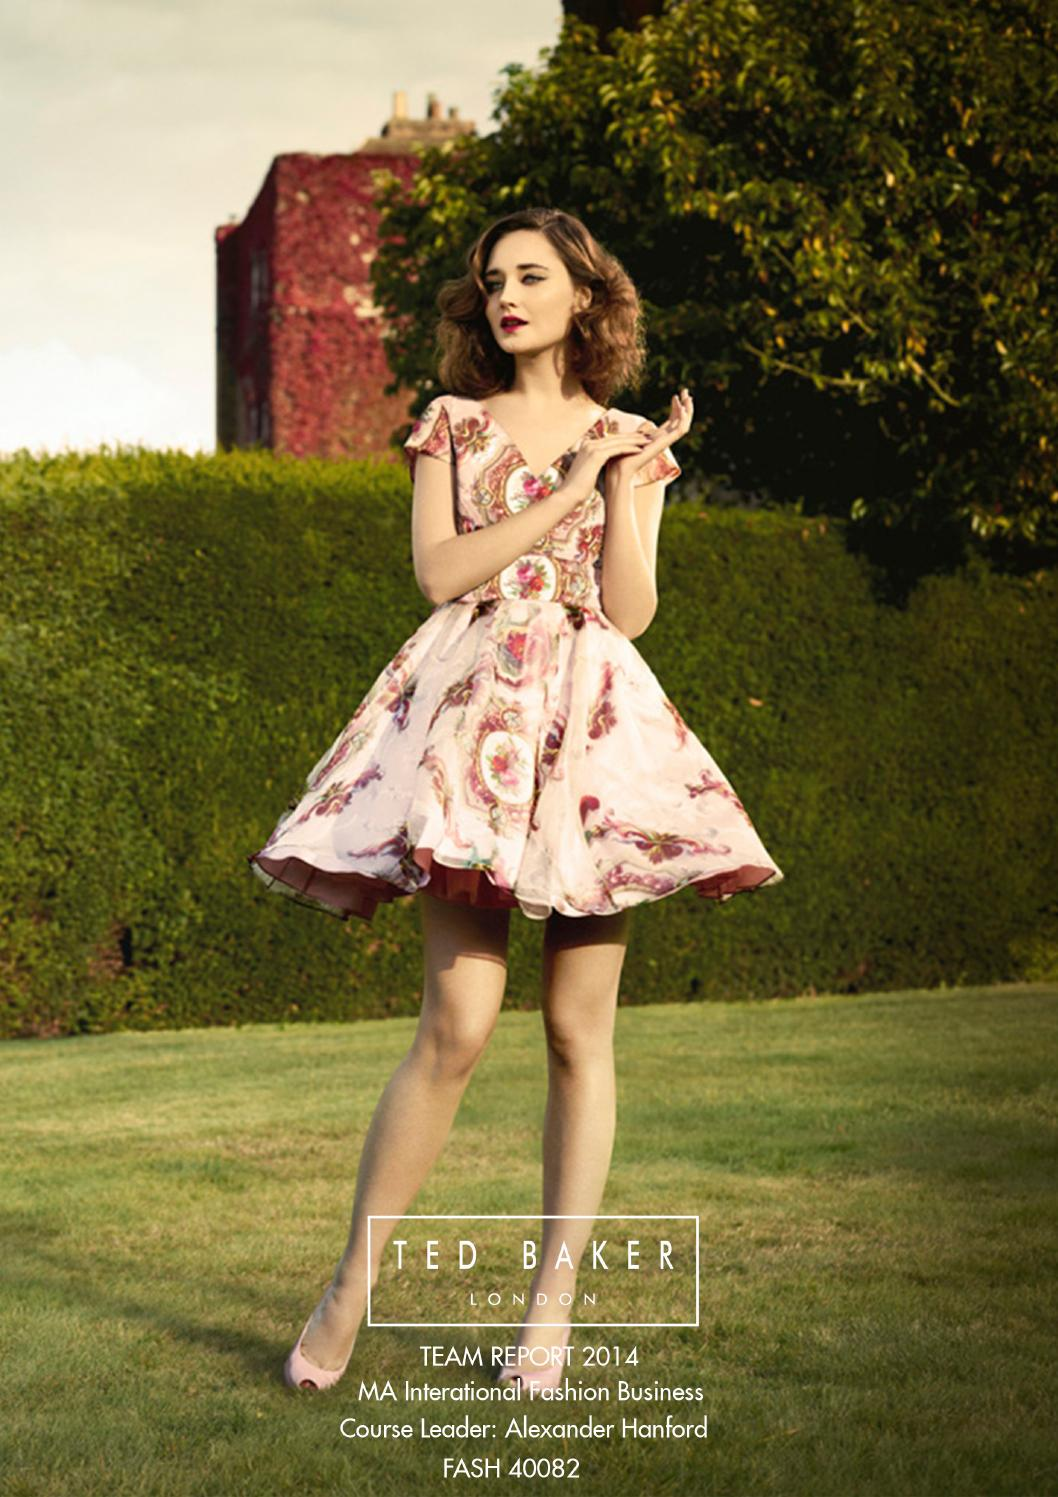 9d7ec9214eb9 Ted Baker Report 2014 by Katherine Chen - issuu